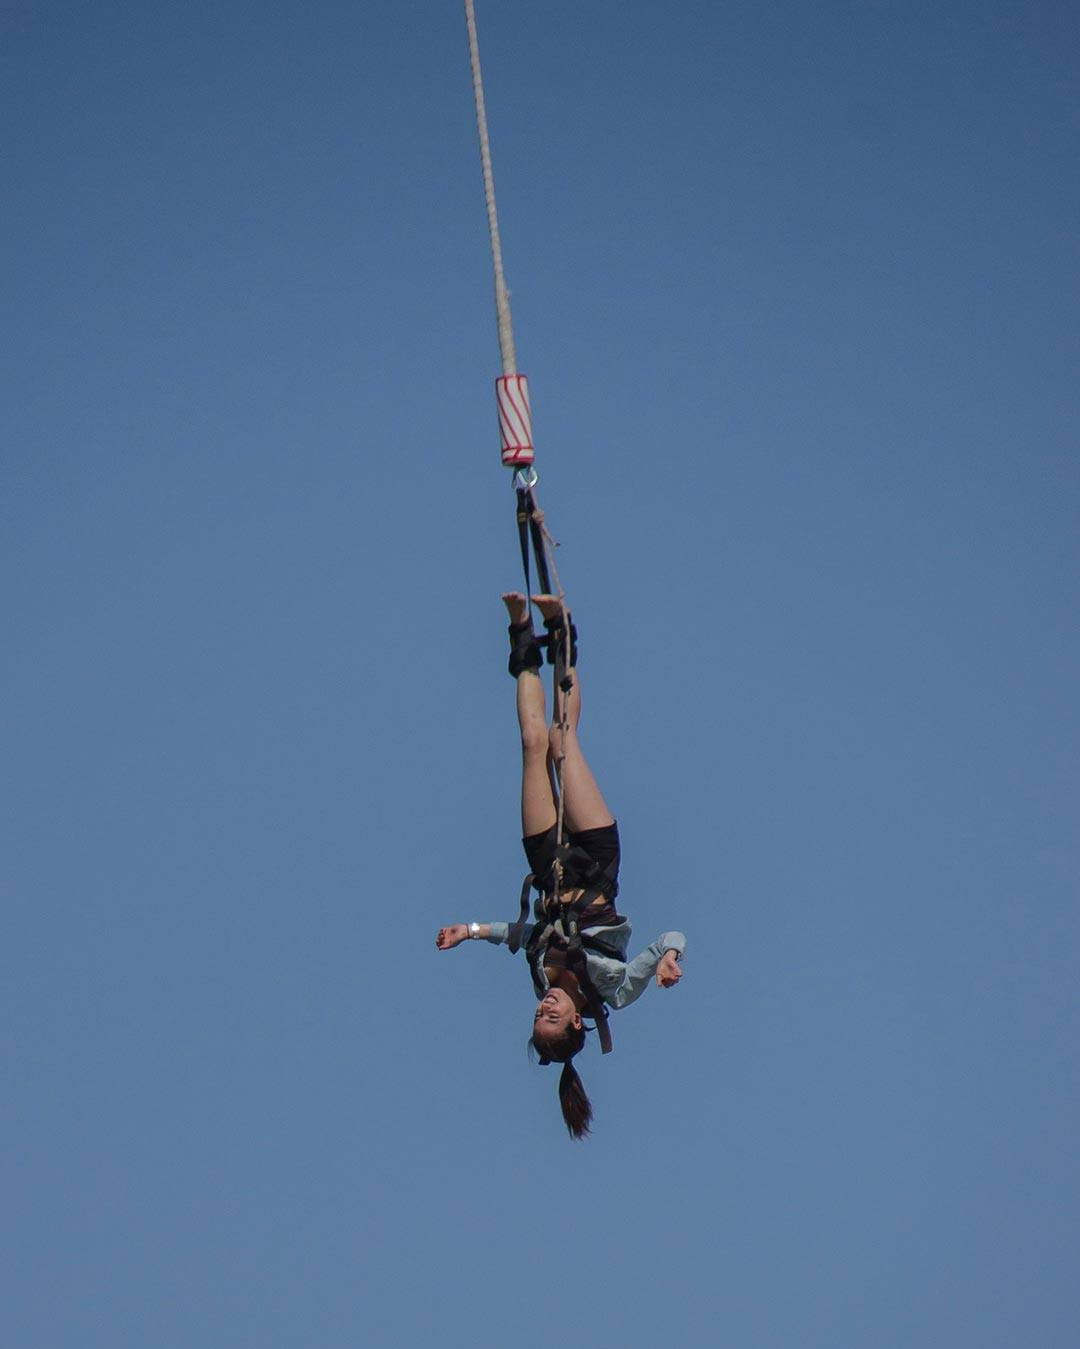 Bungy Jumping Adventure Activities In Portugal